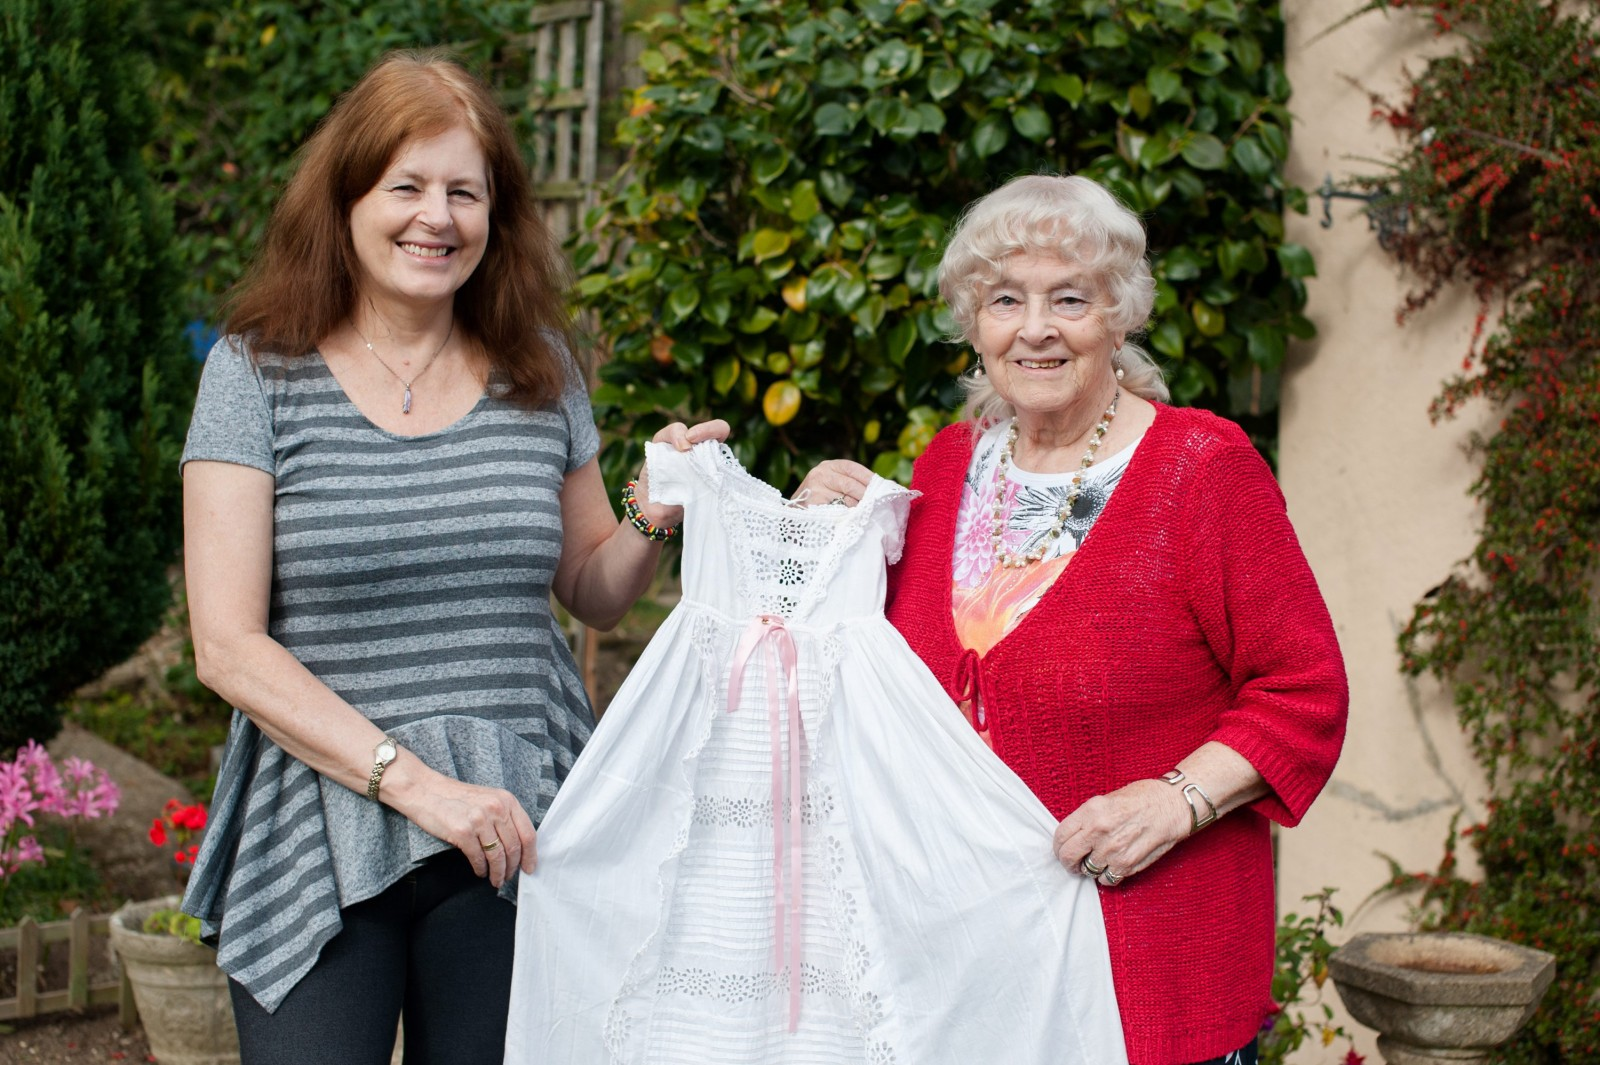 Secret of the pristine christening gown that's survived five generations